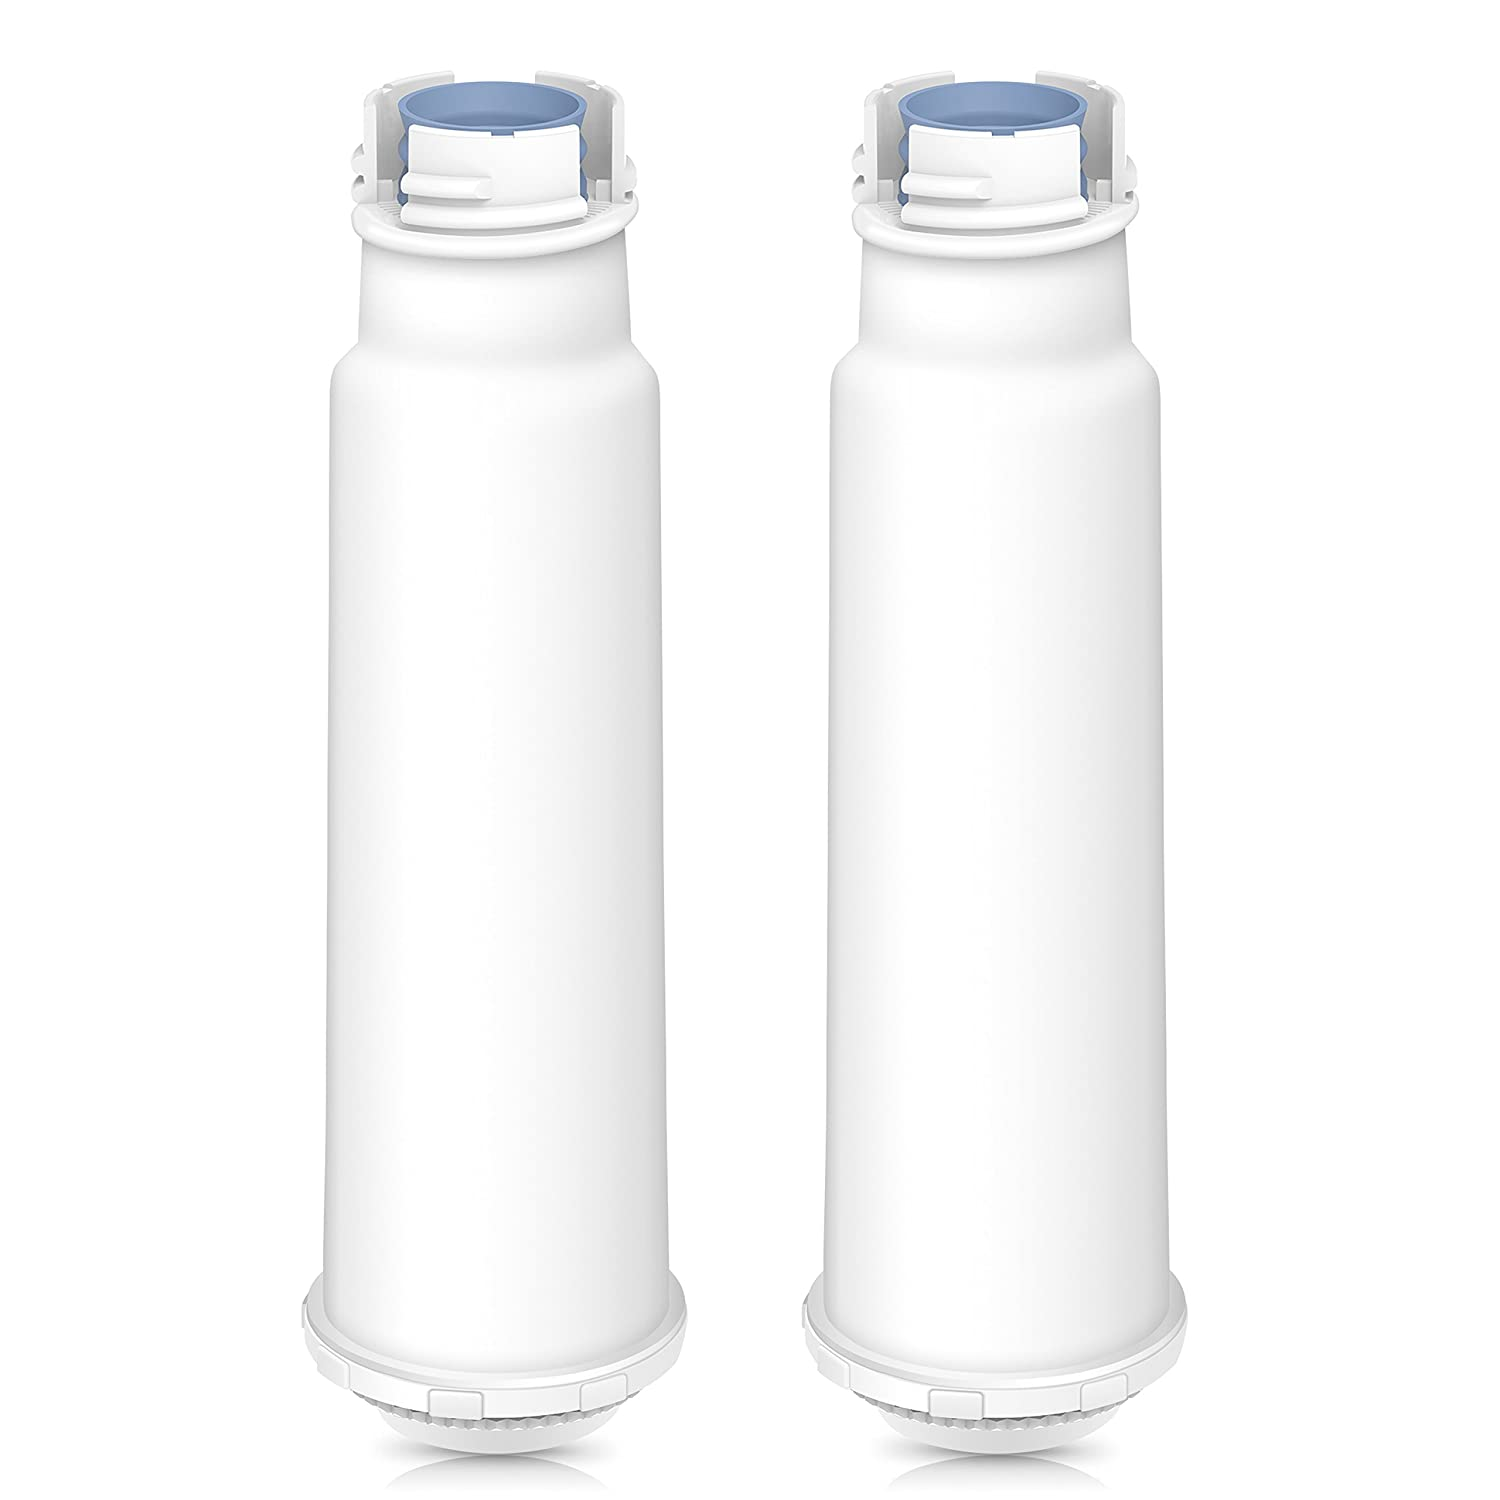 AQUA CREST TÜV SÜD Certified Coffee-Machine Water Filter Replacement for Krups Claris F088 - Including Various Models of AEG, Bosch, Siemens, Gaggenau, Nivona, Melitta, Neff, Cocoon (Pack of 2)